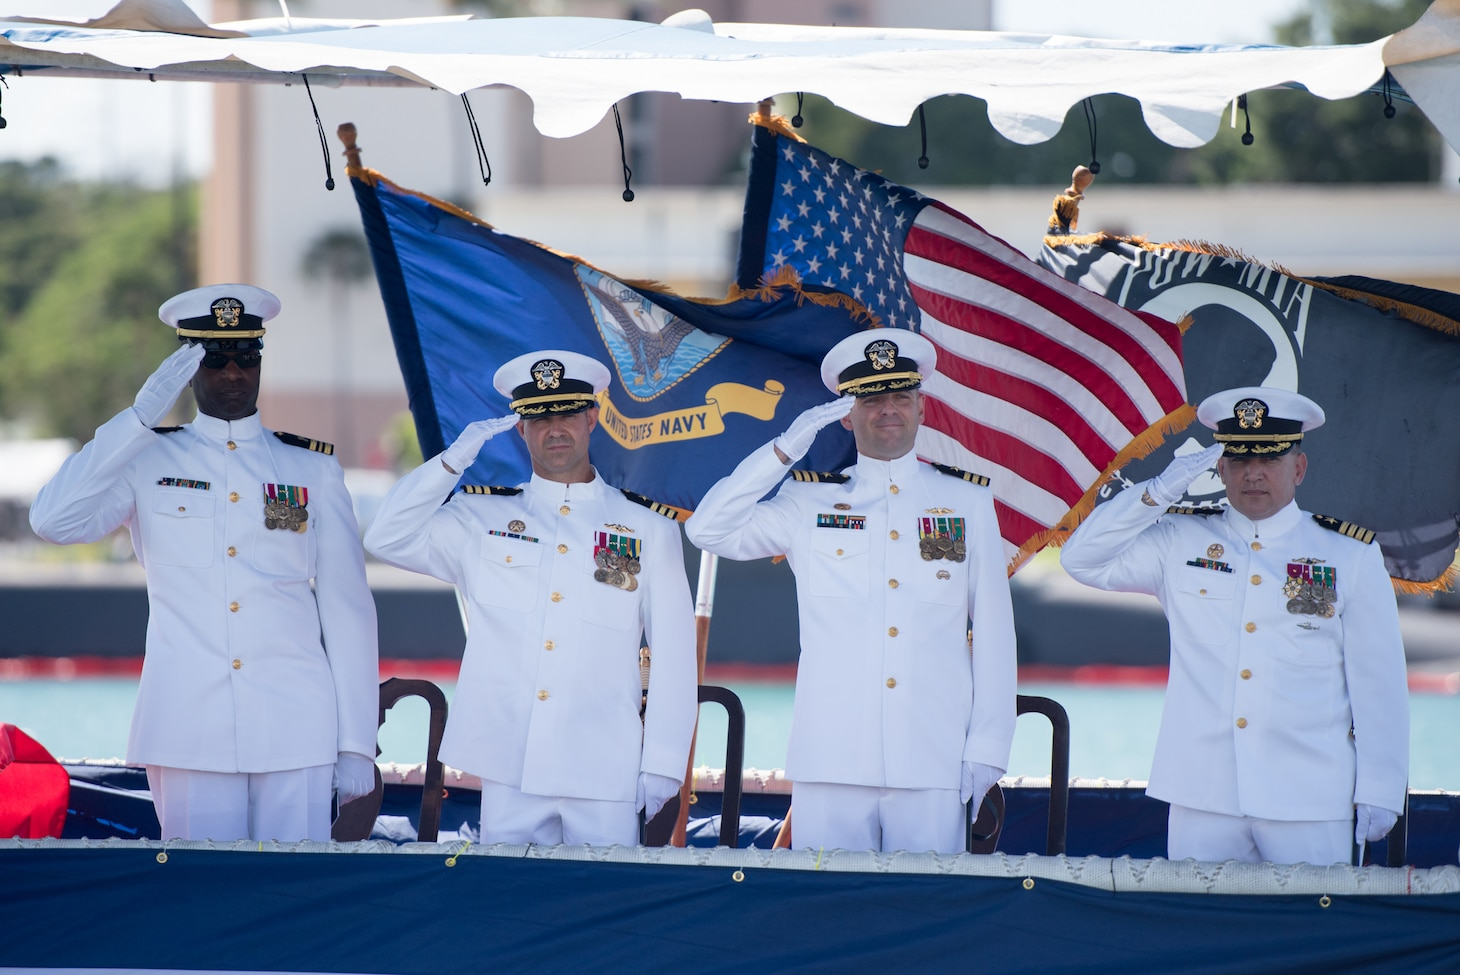 PEARL HARBOR (August 3, 2018) - The official party salutes during the change of command ceremony for Los Angles-class fast-attack submarine USS Columbia (SSN 771) on the historic submarine piers at Joint Base Pearl Harbor-Hickam, August 3. Cmdr. Tyler Forrest relieved Cmdr. Dave Edgerton as Columbia's commanding officer. (U.S. Navy photo by Mass Communication Specialist 1st Class Daniel Hinton)